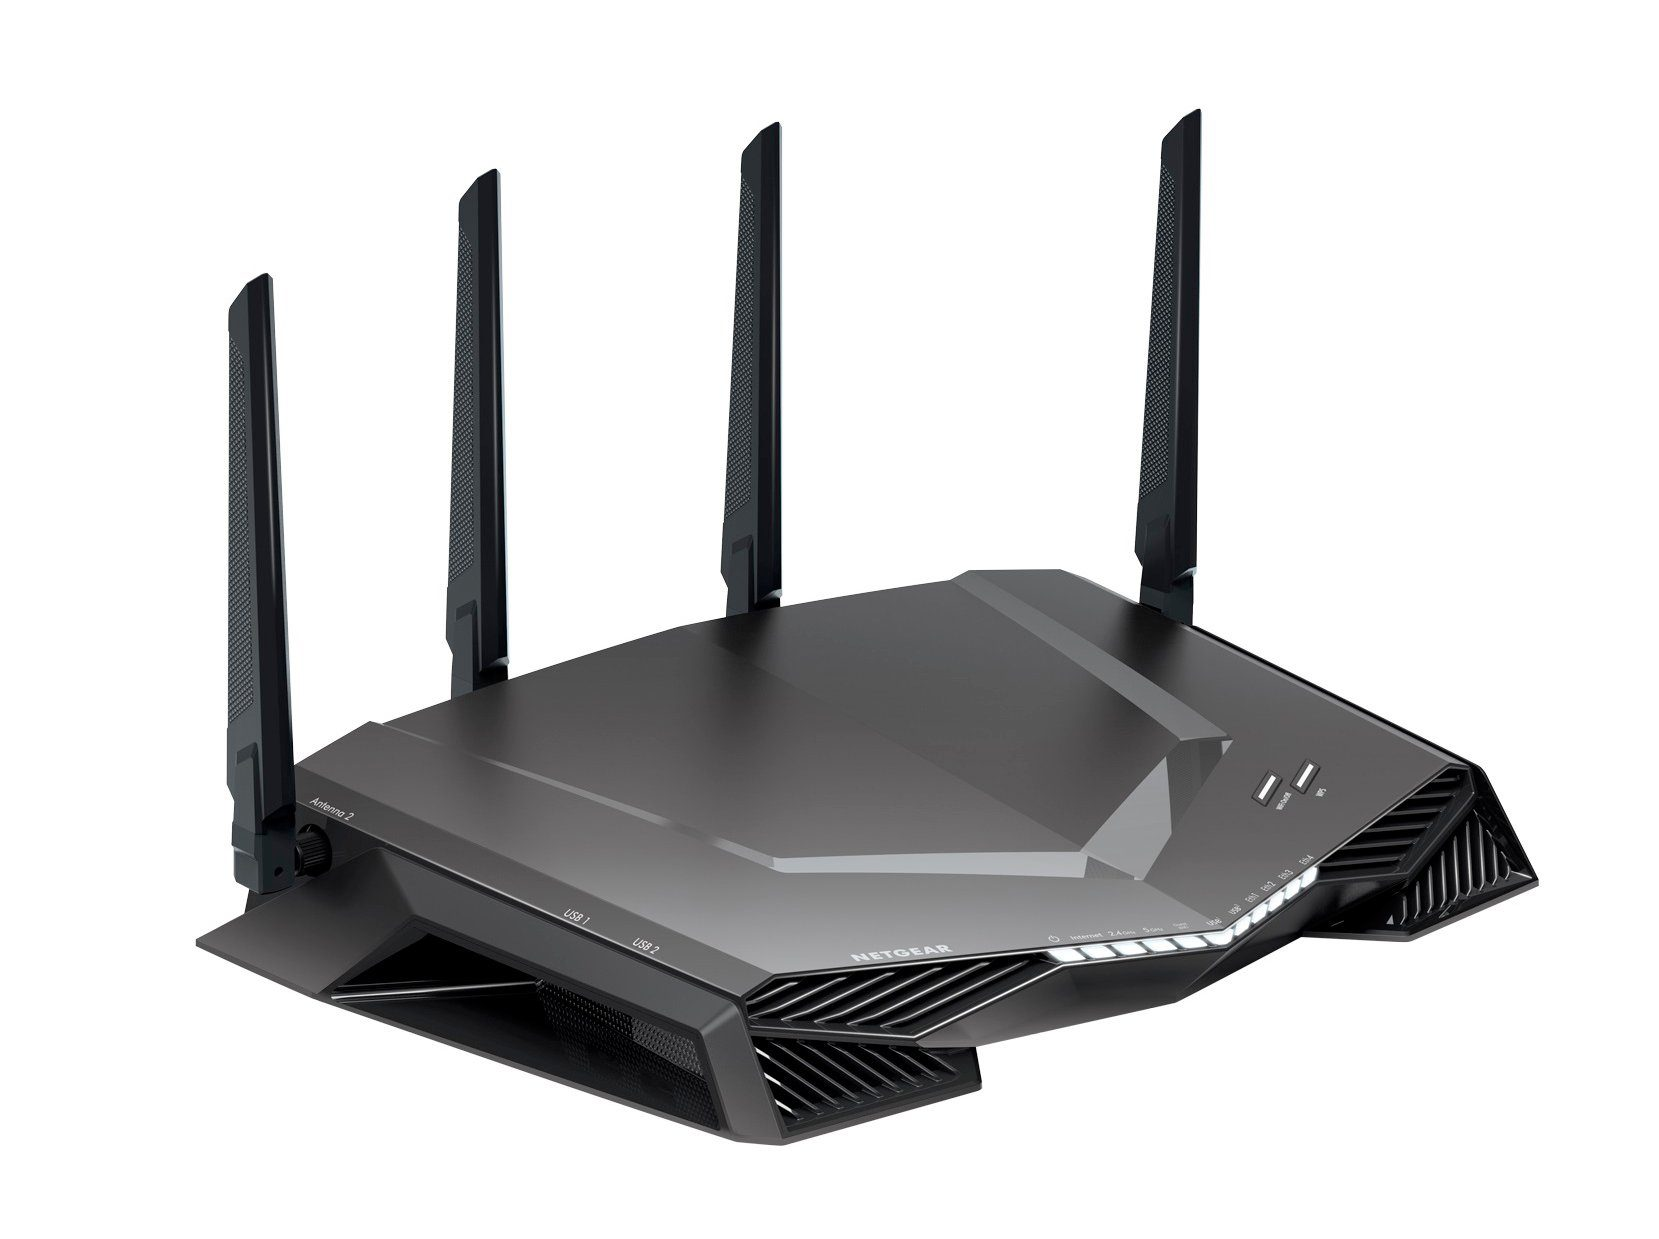 Netgear Router Hardware »Nighthawk Pro Gaming Router«